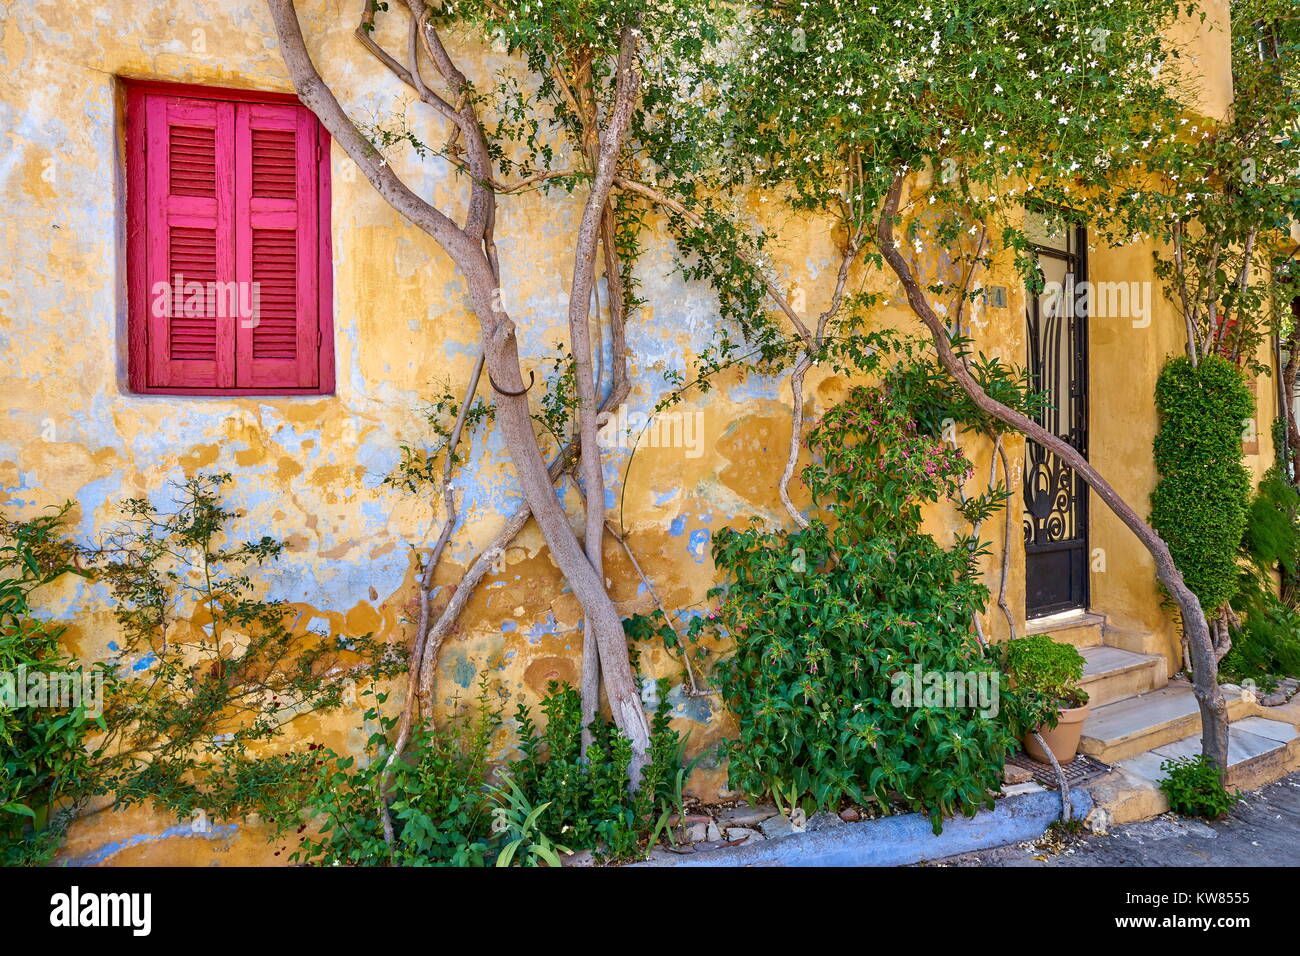 Colorful houses in Anafiotika quarter under the Acropolis, Athens, Greece Stock Photo